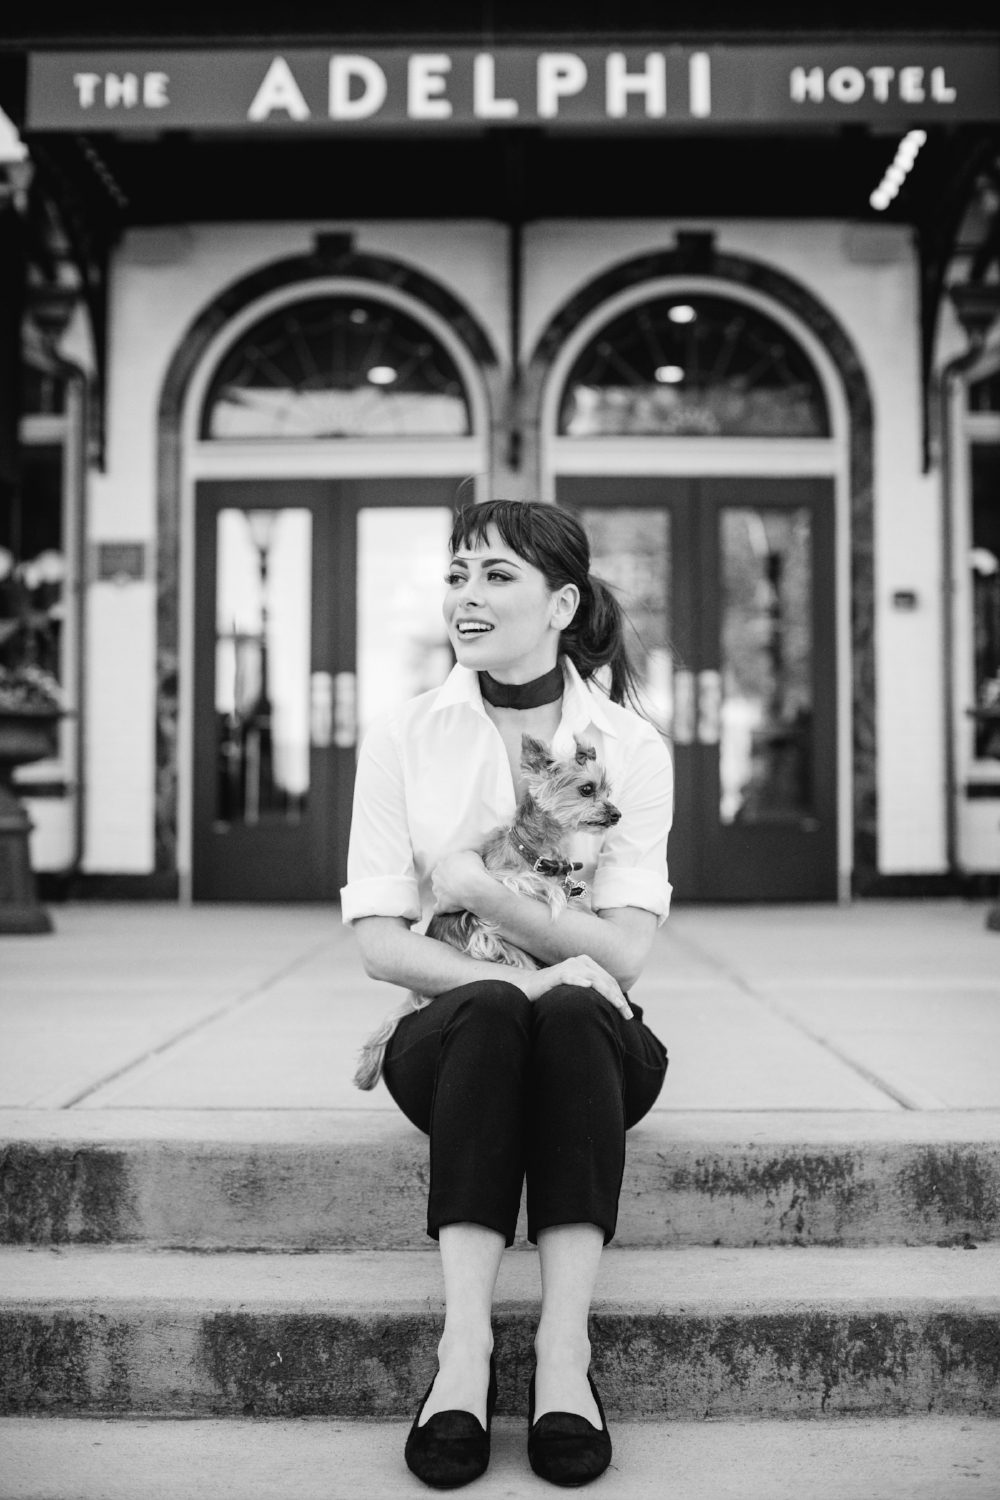 Nina Jade is relaxed and ready to shoot on the steps of the Adelphi Hotel in her comfy smoking slippers by  Birdies  of San Francisco, also a favorite of Meghan Markle.